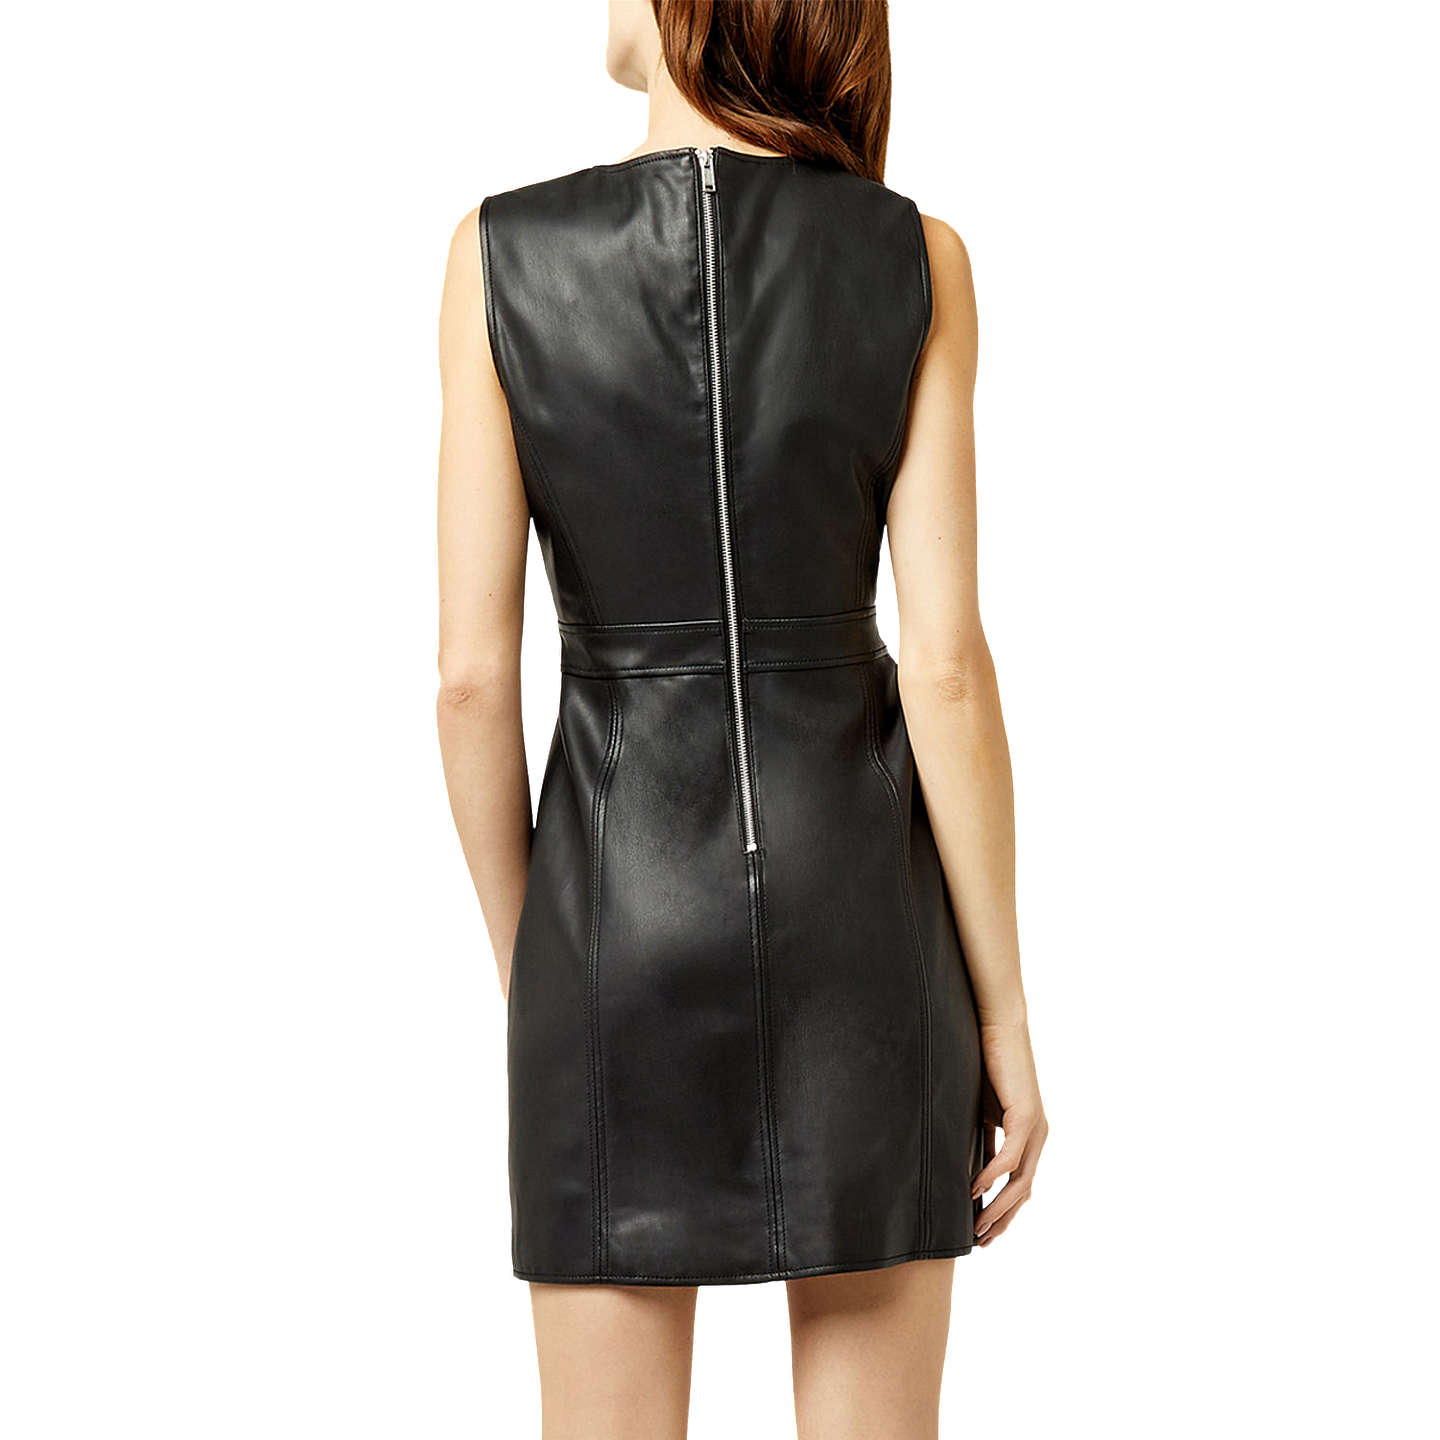 BuyWarehouse Faux Leather Dress, Black, 6 Online at johnlewis.com